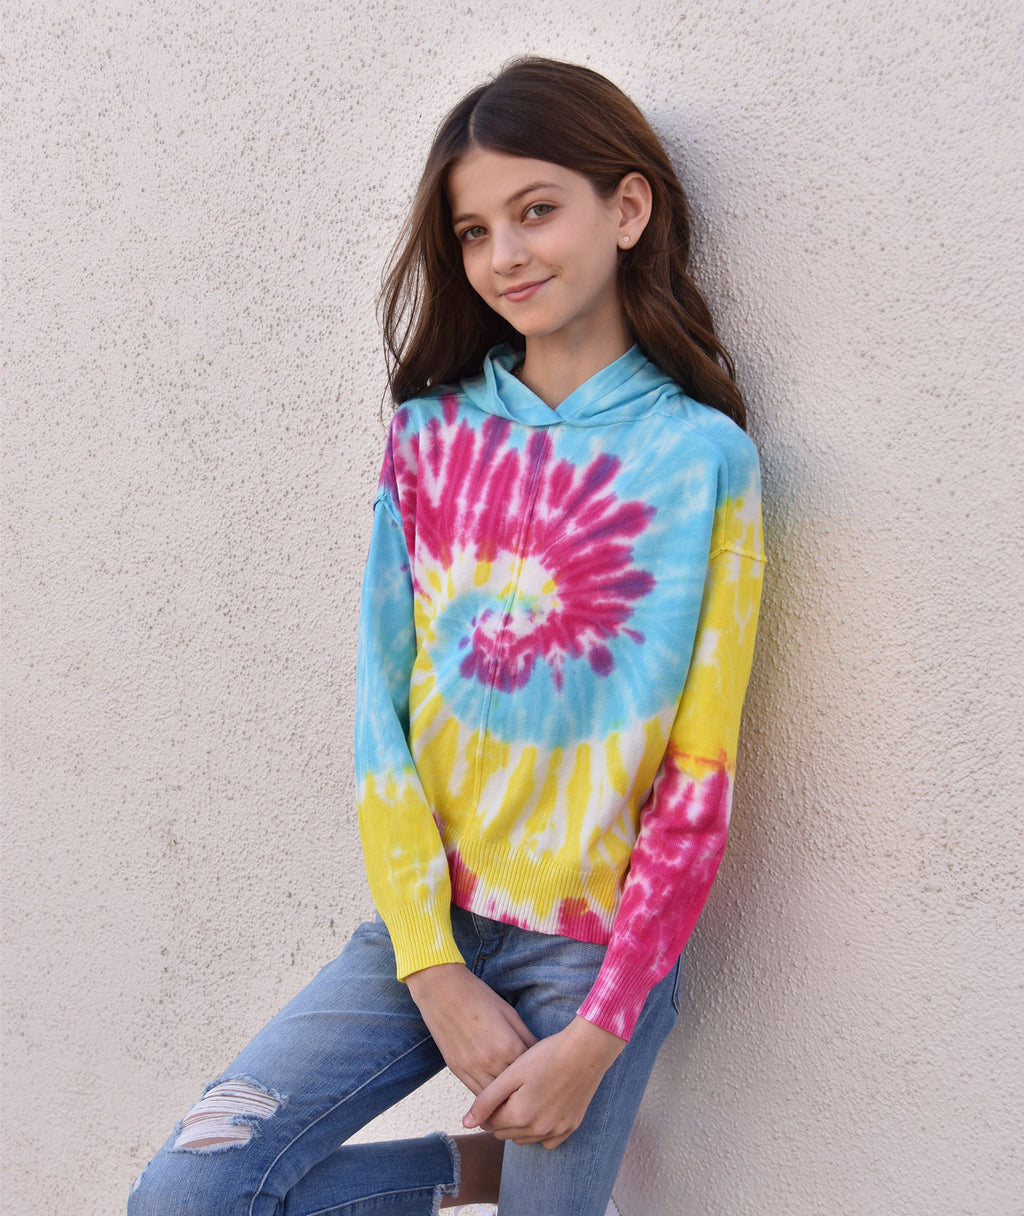 Central Park West Girls Pink and Yellow Tie-Dye Sweater